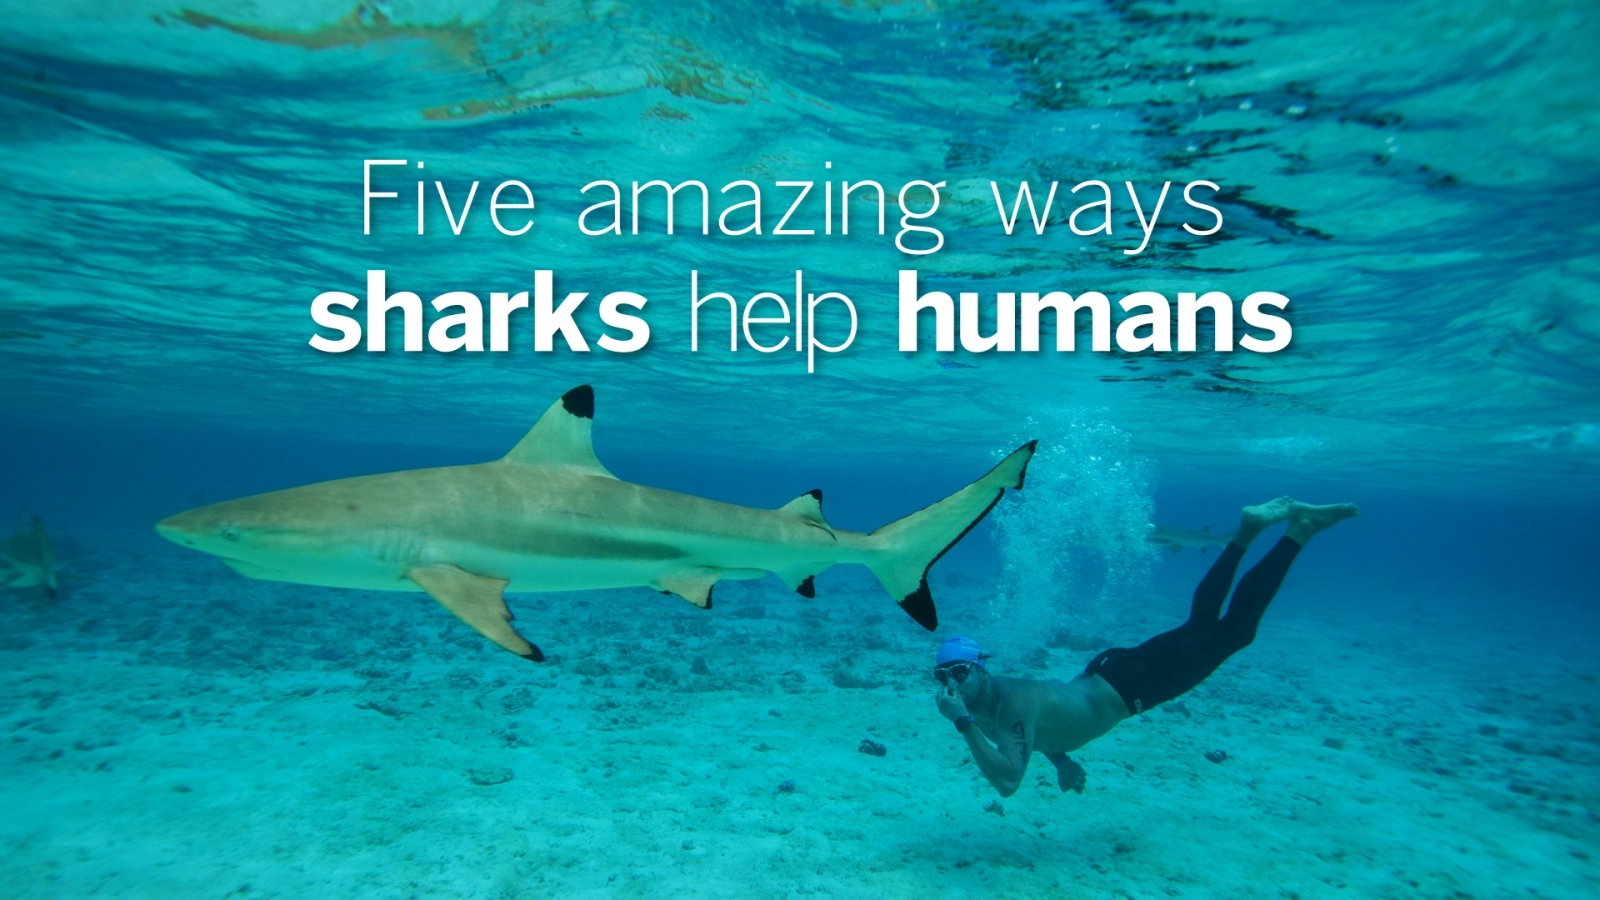 Five amazing ways sharks help humans